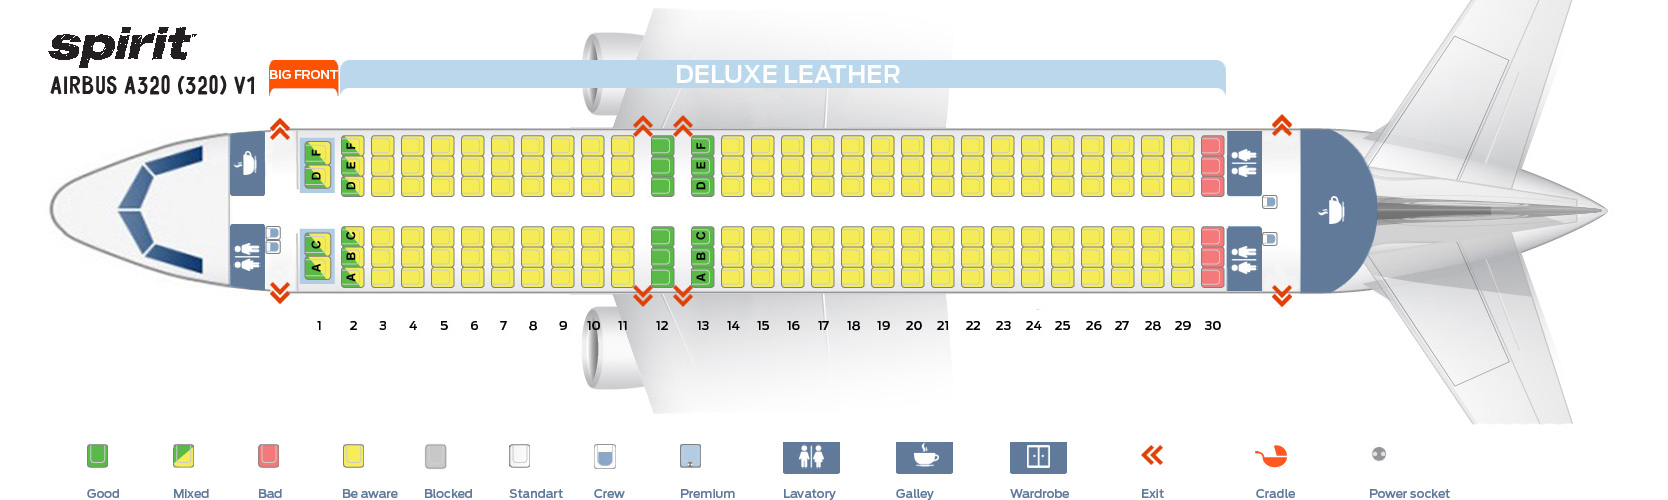 Seat Map Airbus A320-200 V1 Spirit Airlines